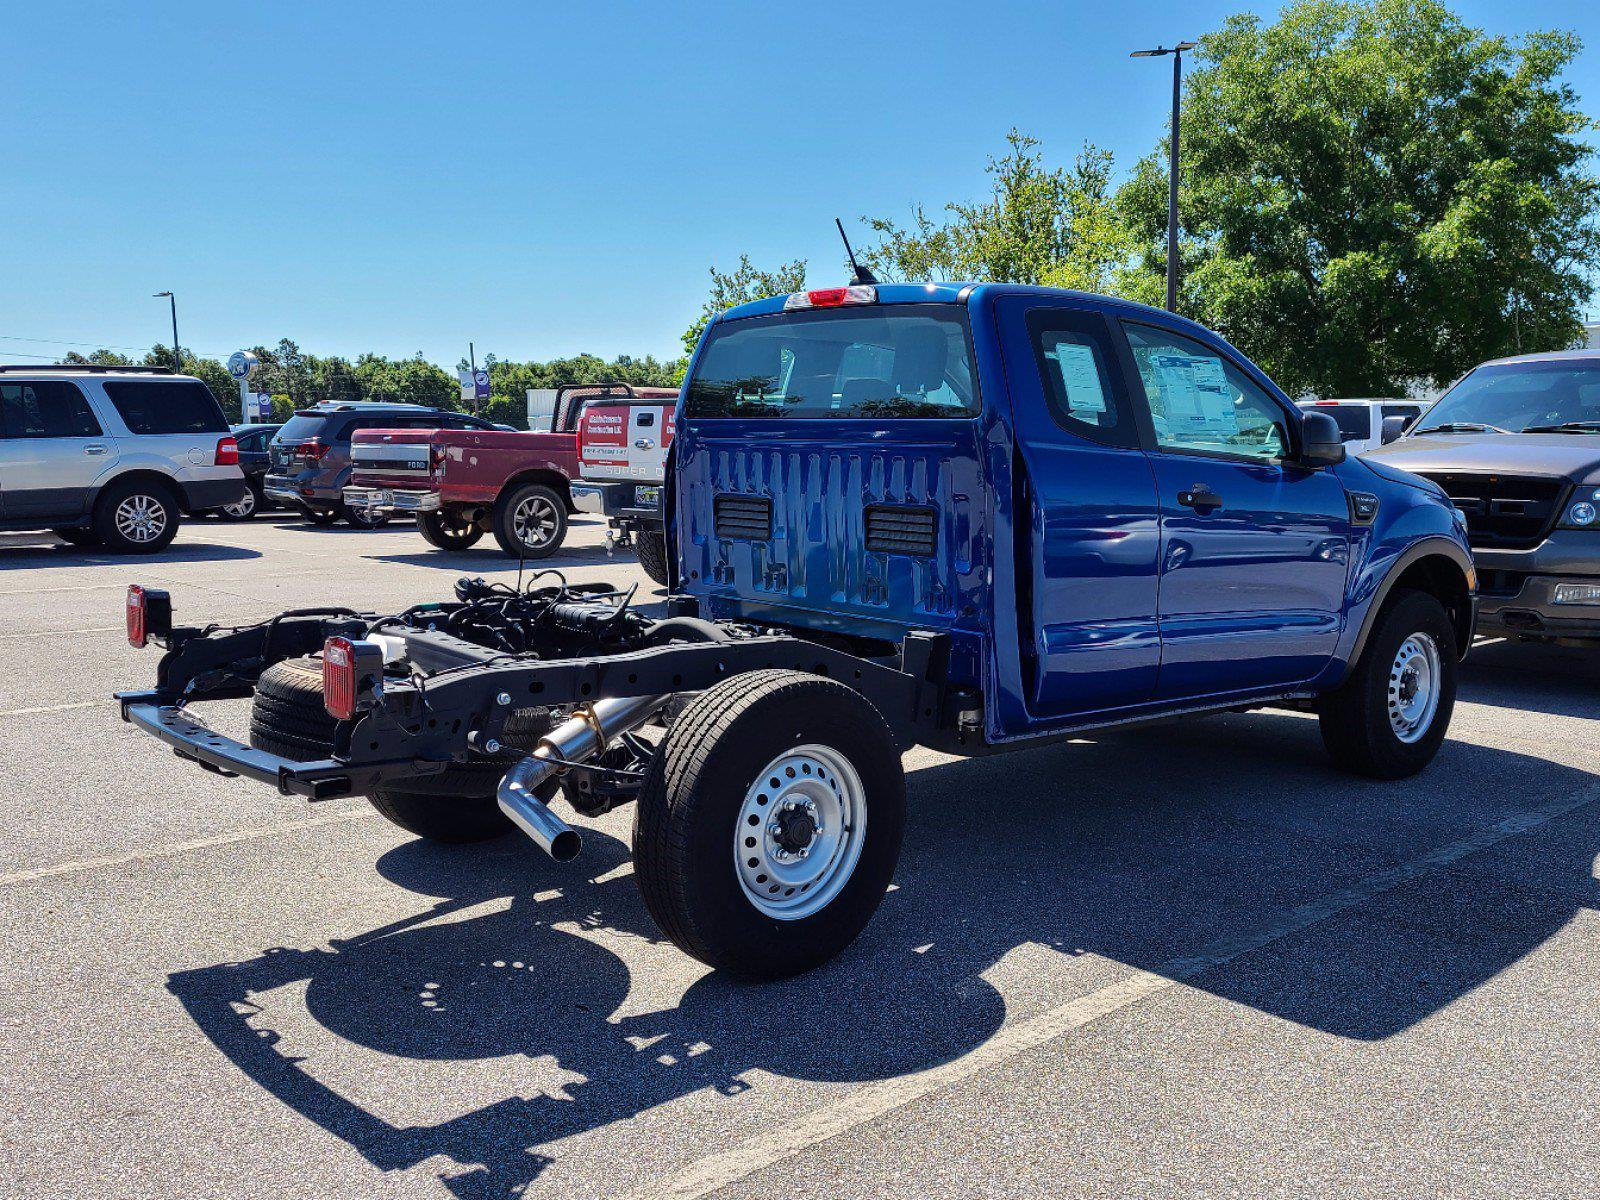 2020 Ford Ranger Super Cab 4x2, Cab Chassis #JLLA51571 - photo 1